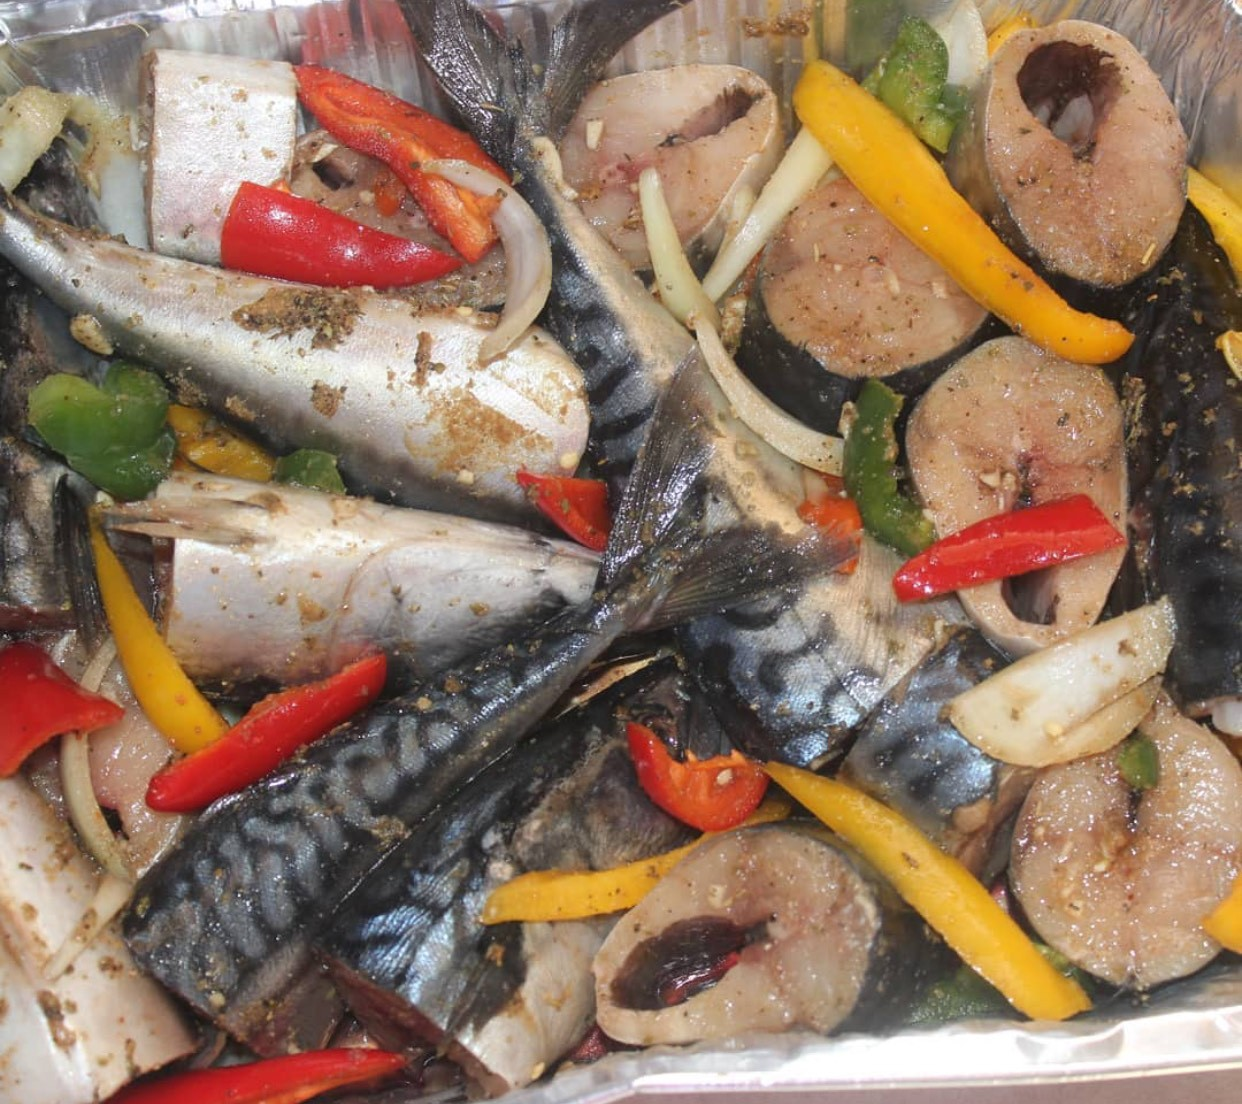 How to use Afromeals fish seasoning!